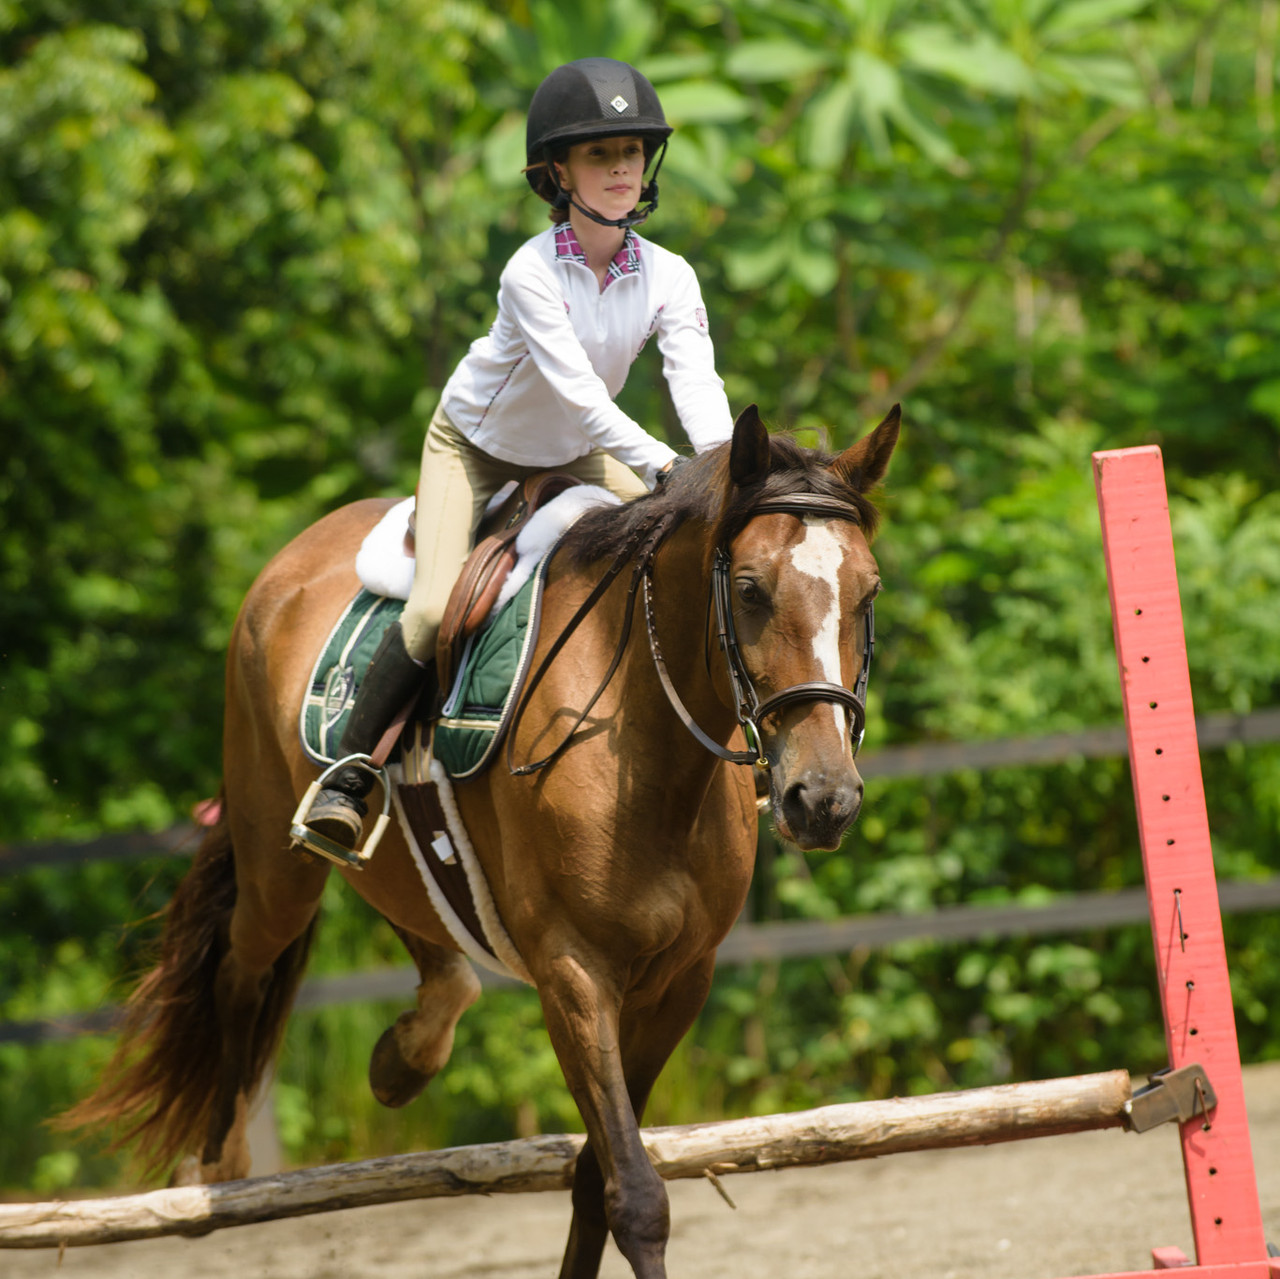 How to find horseback riding in Costa Rica